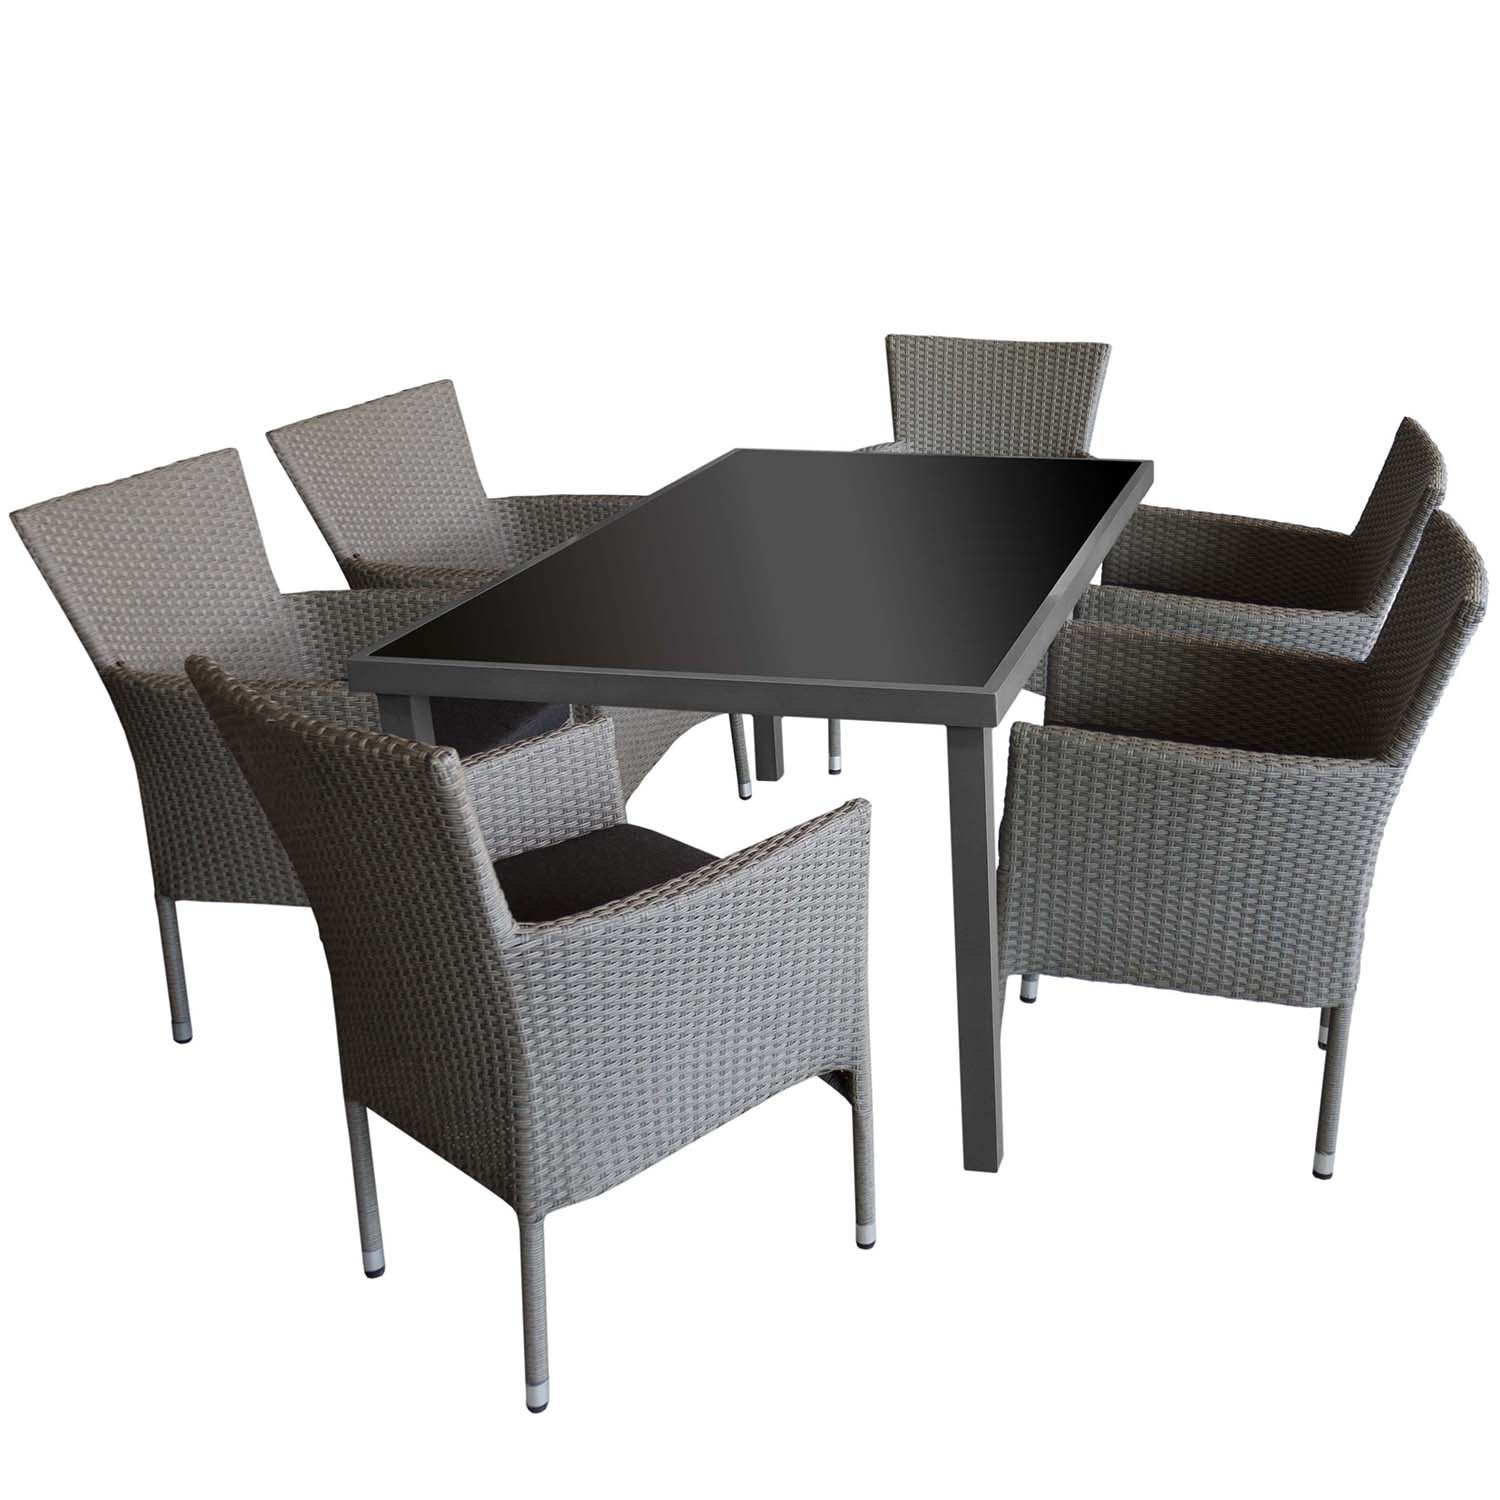 alu gartentisch glastisch 150x90cm balkontisch. Black Bedroom Furniture Sets. Home Design Ideas